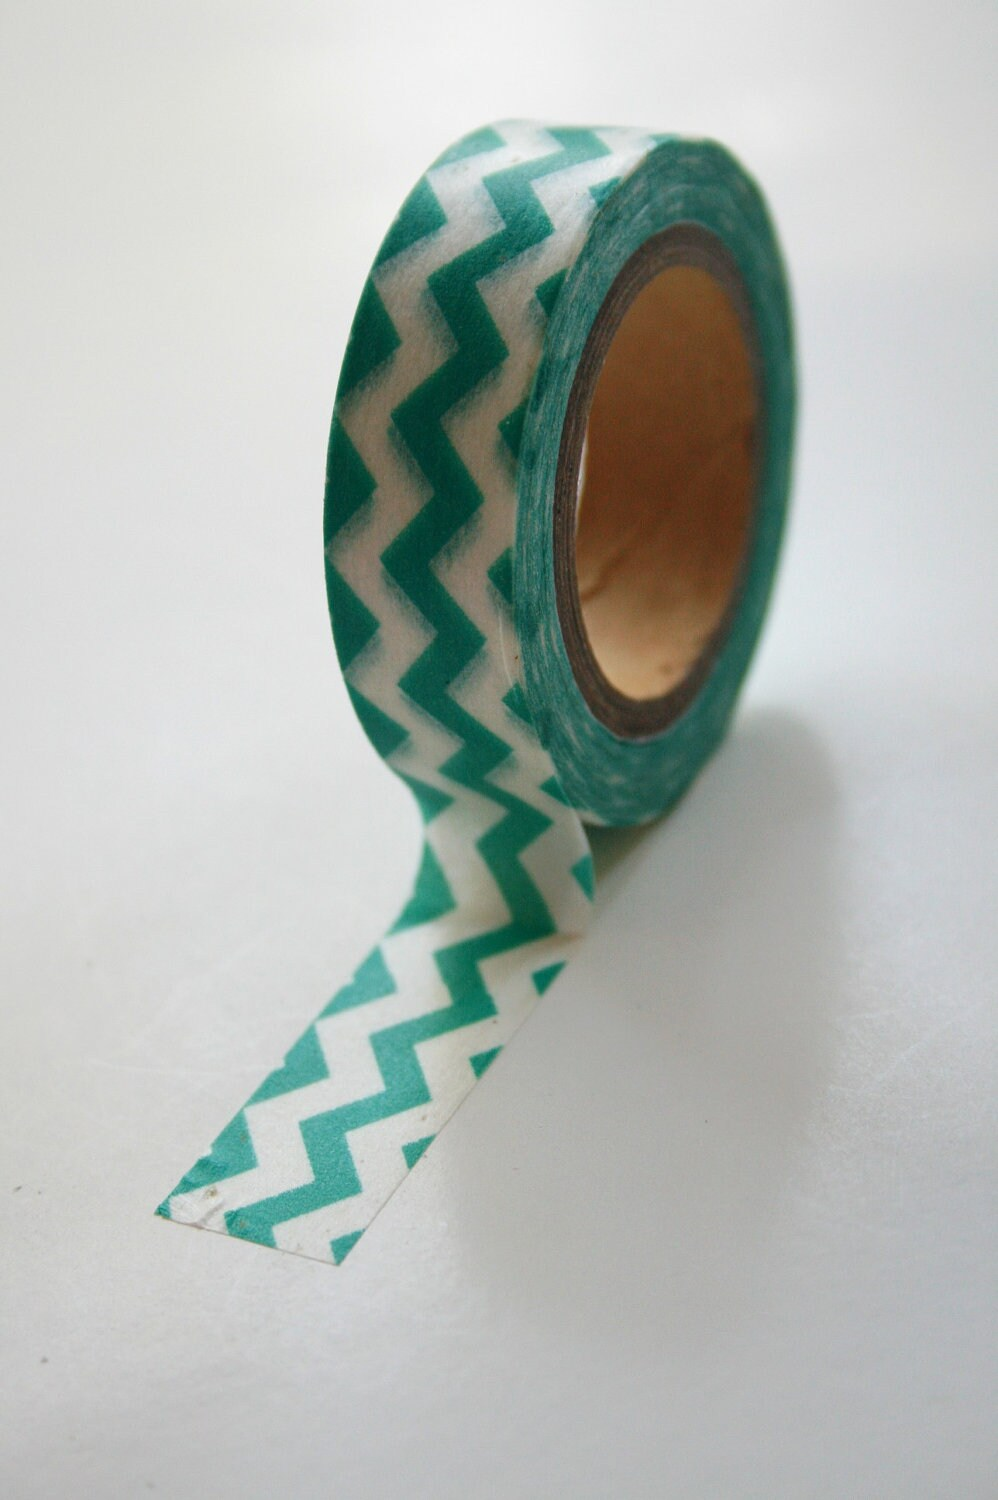 Washi Tape - 15mm - Teal Chevron on White - Deco Paper Tape No. 505 - InTheClear